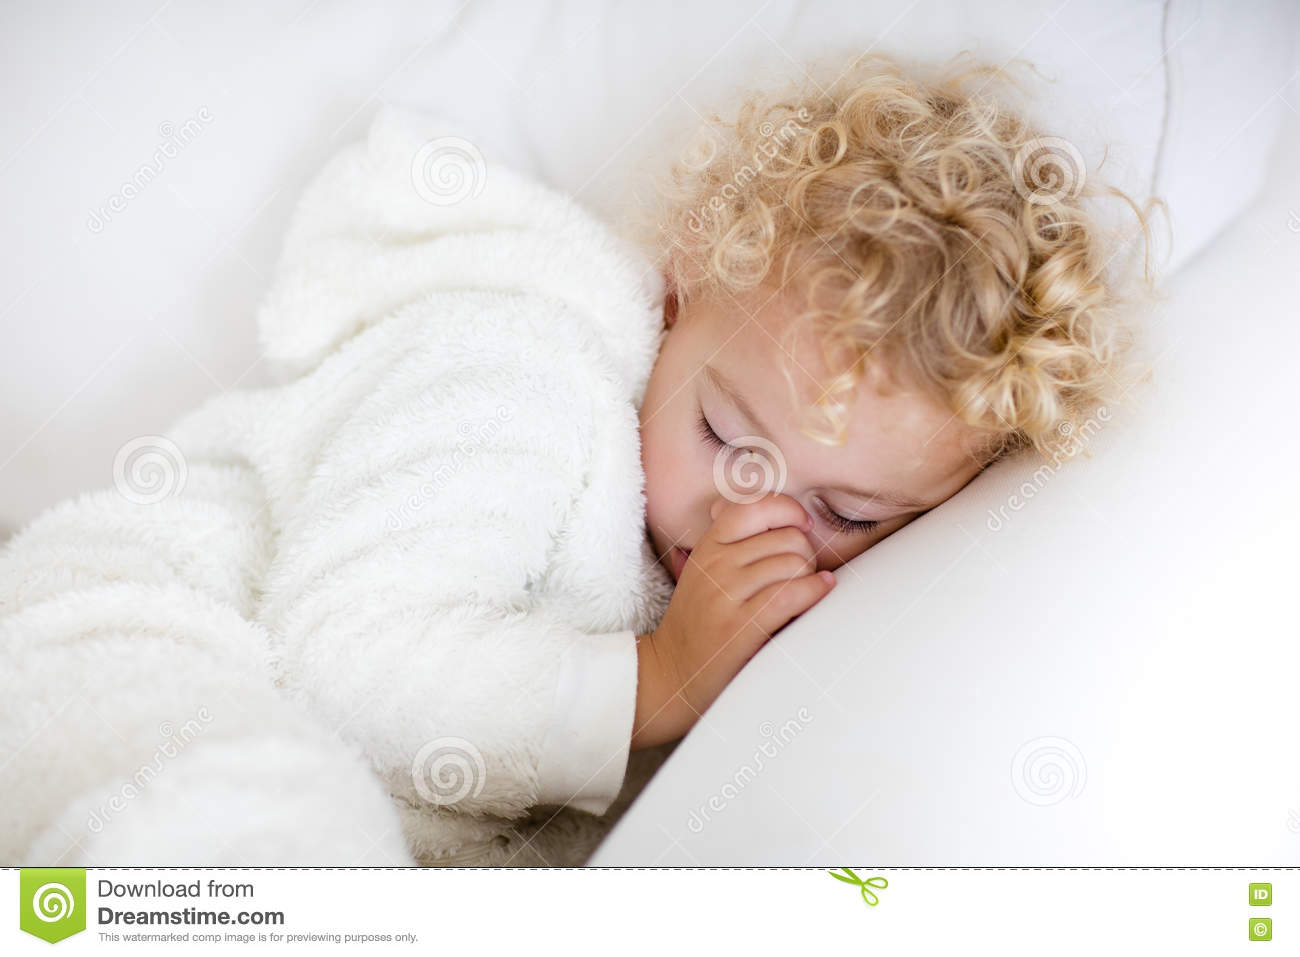 Remarkable Cute Blond Curly Little Boy Sleeping On White Couch Stock Dailytribune Chair Design For Home Dailytribuneorg